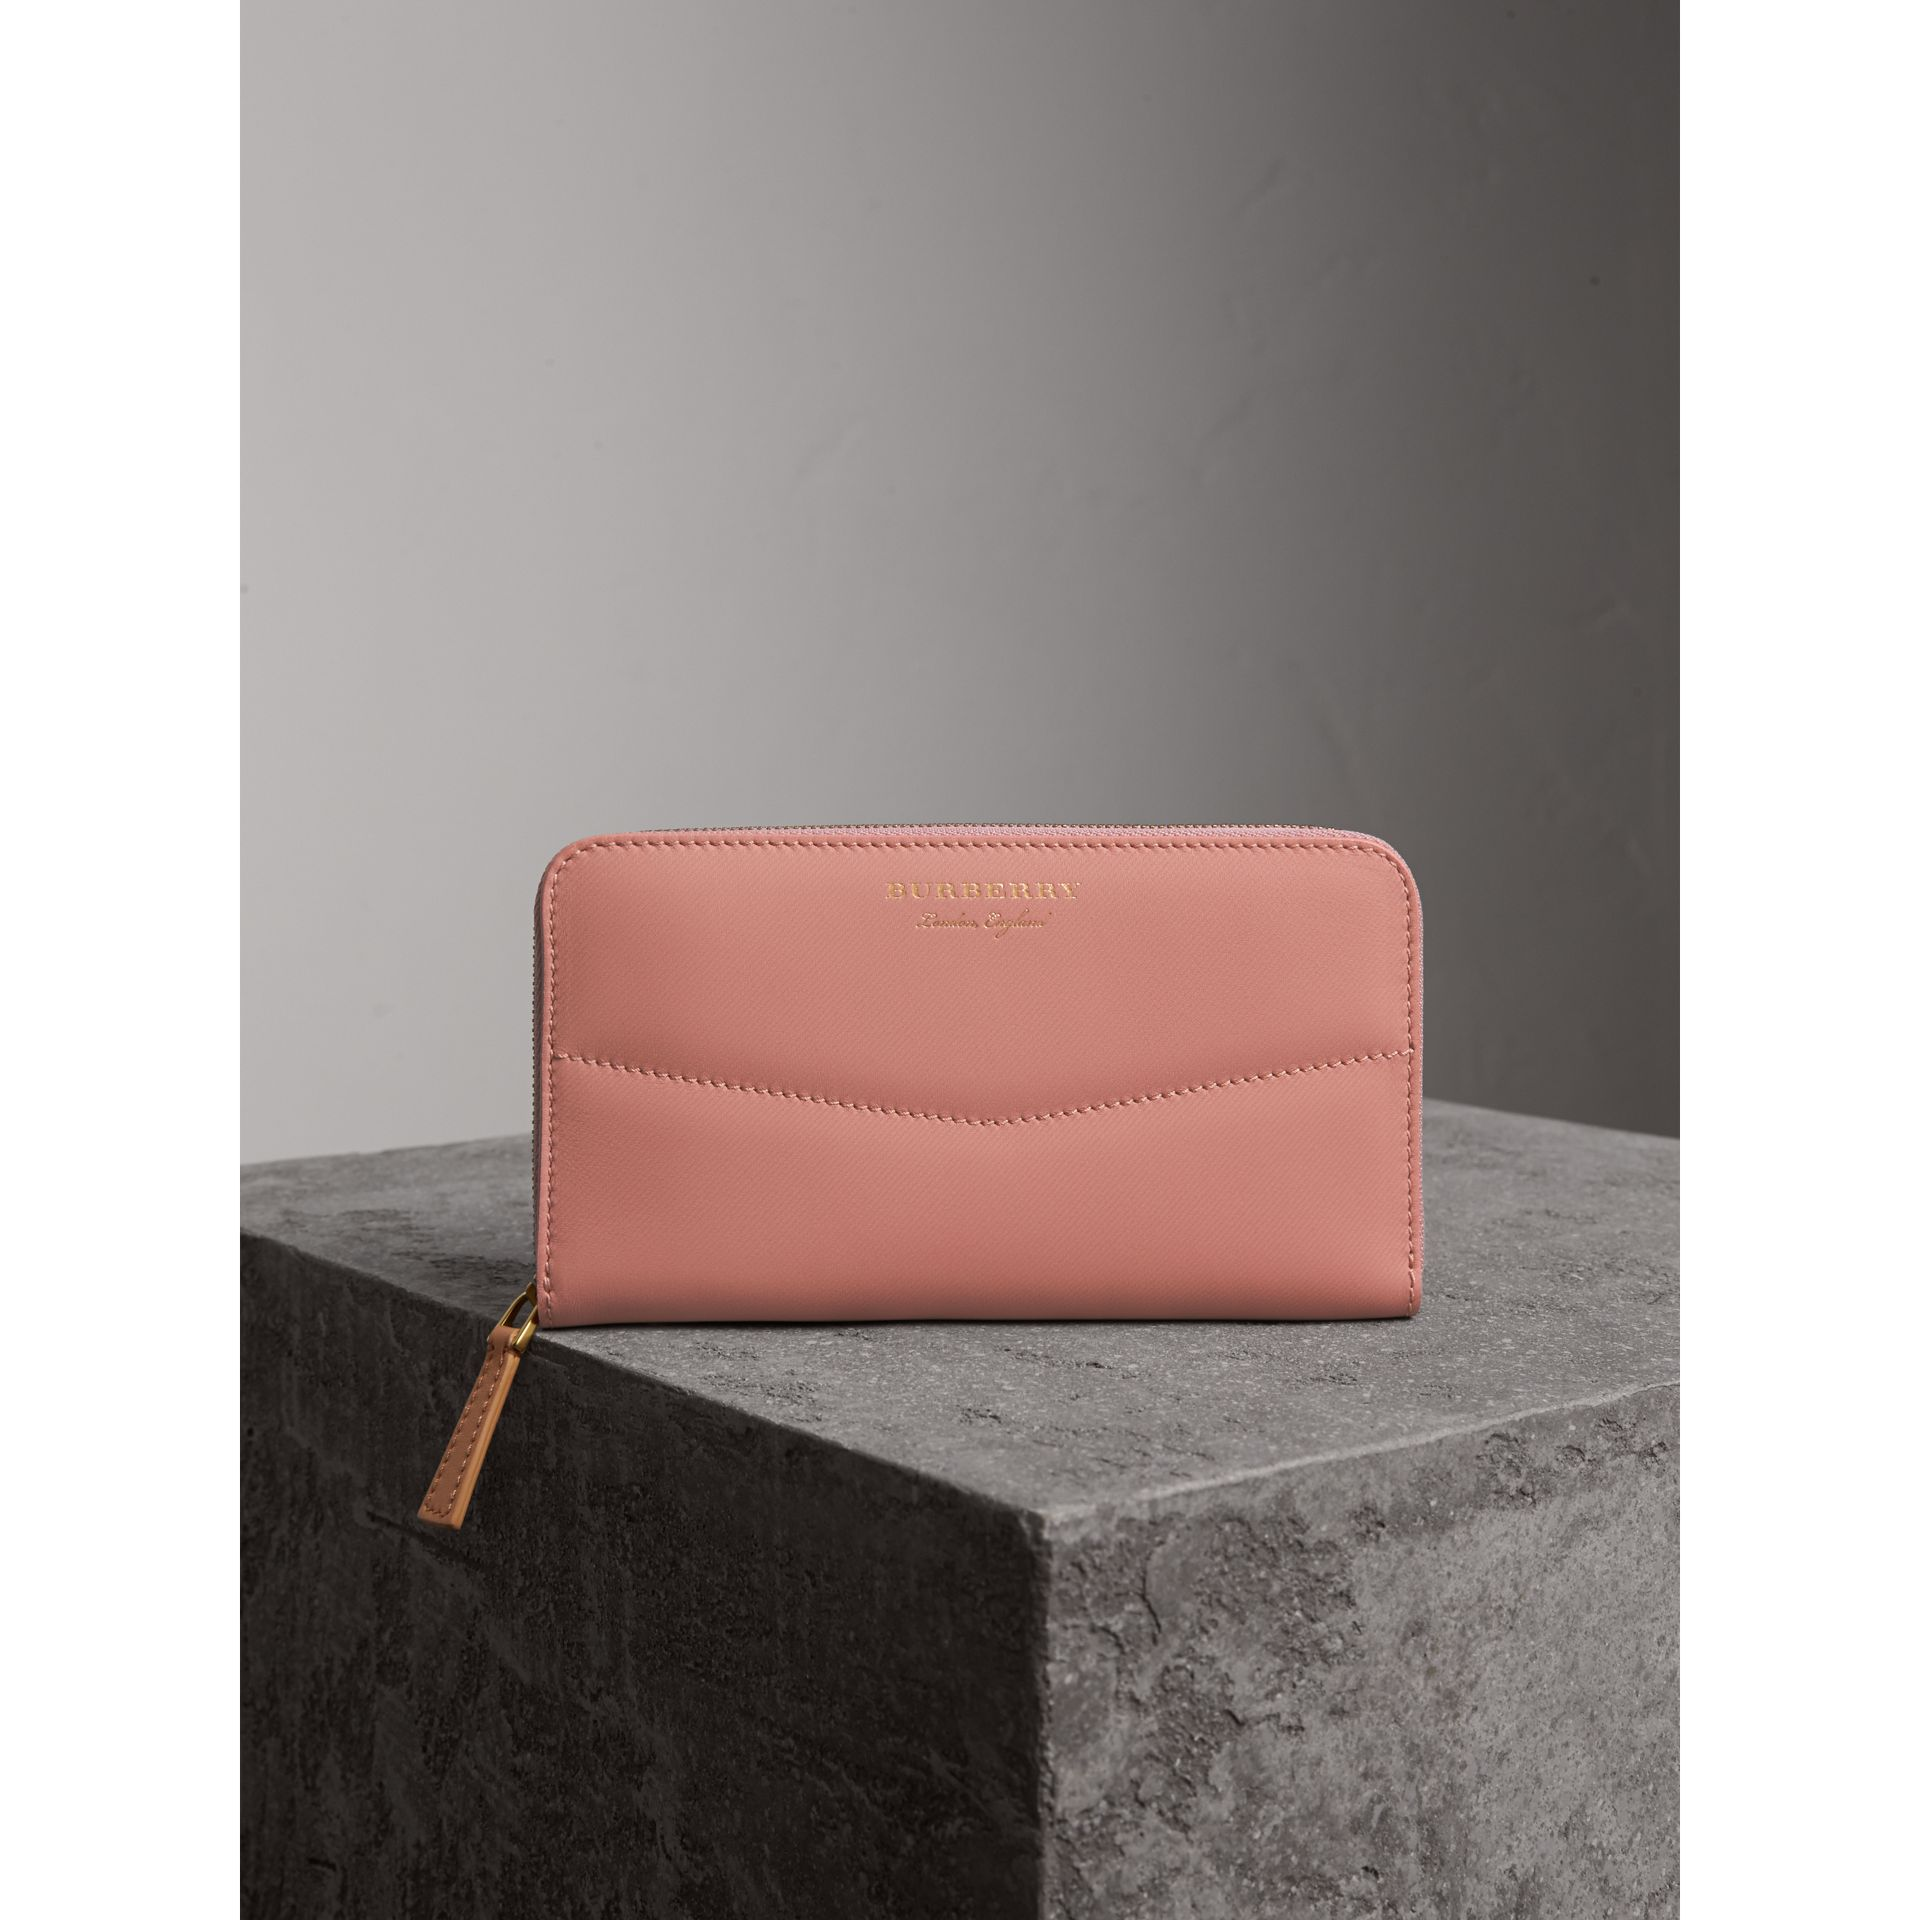 Two-tone Trench Leather Ziparound Wallet in Ash Rose/pale Clementine - Women | Burberry - gallery image 5